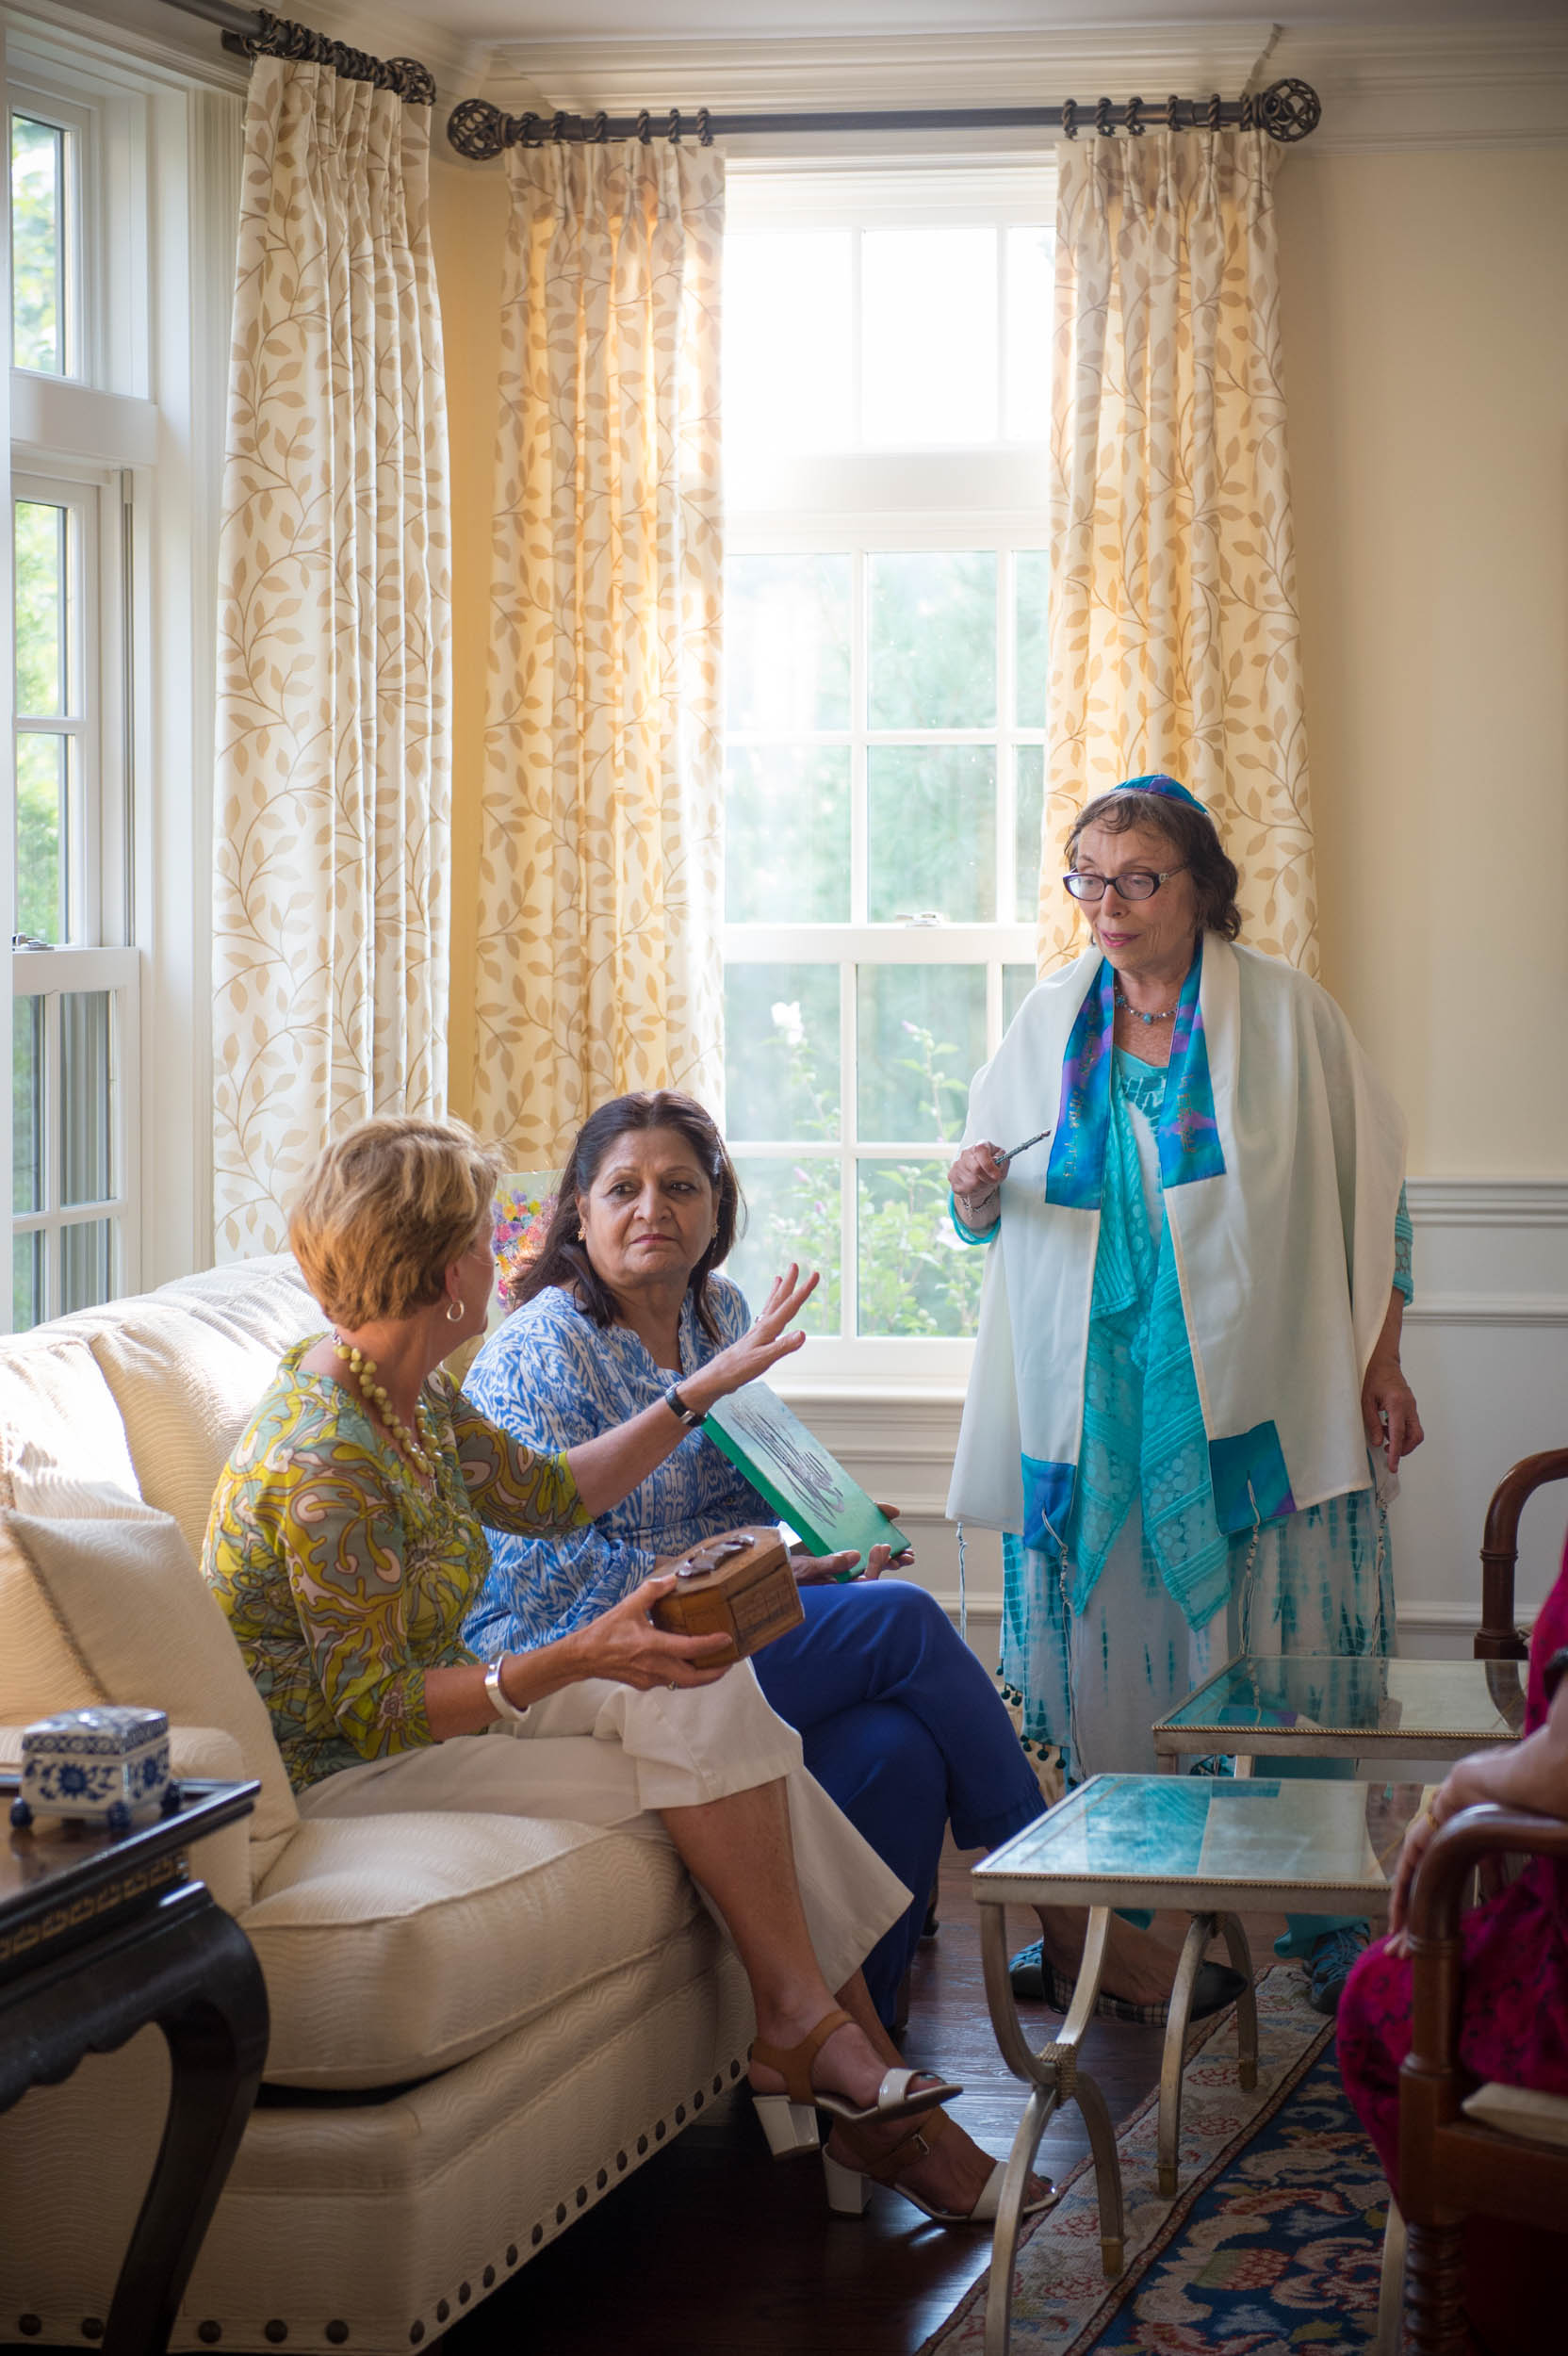 Maura Wayman Photography, Photography, Corporate Photography, stock, stock images, Massachusetts, Boston, Metro West, Mosque, Muslim, Jewish, Wellesley Weston Magazine, women, women talking, living room, home, curtain,